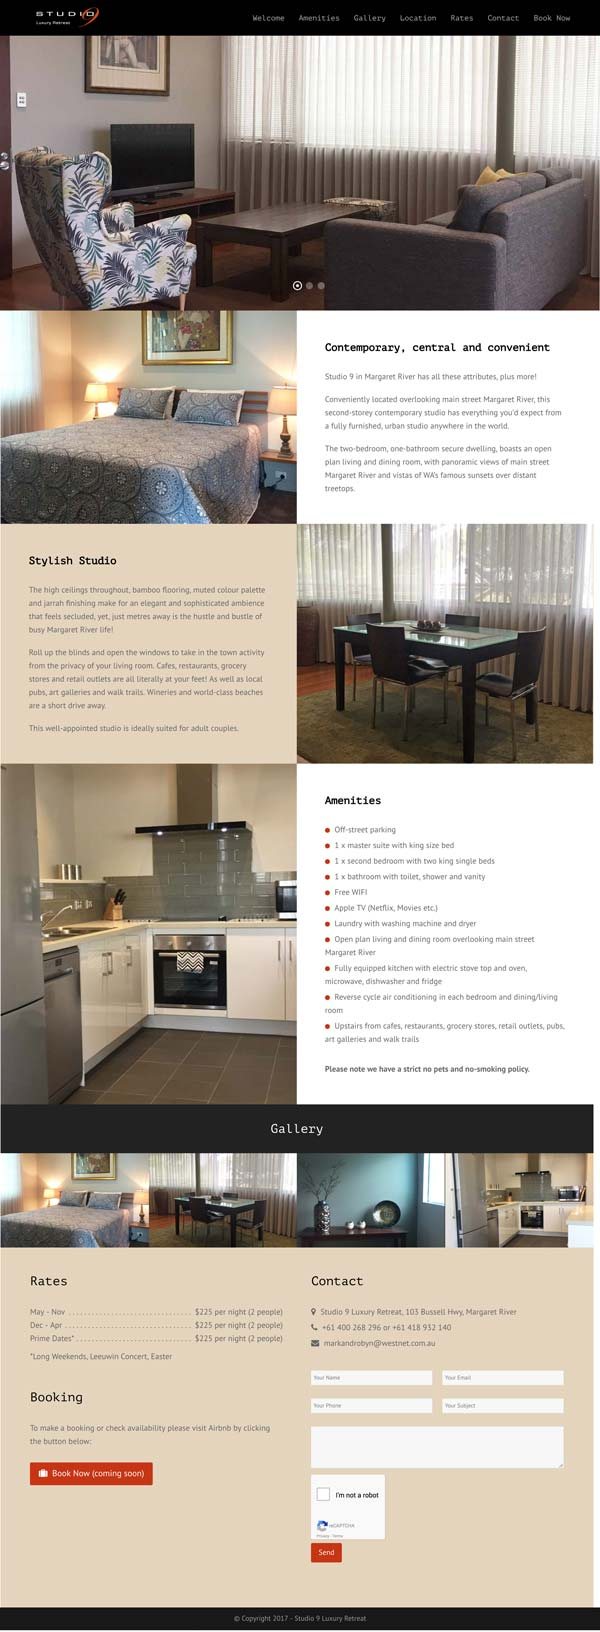 Studio 9 Accommodation Website Design